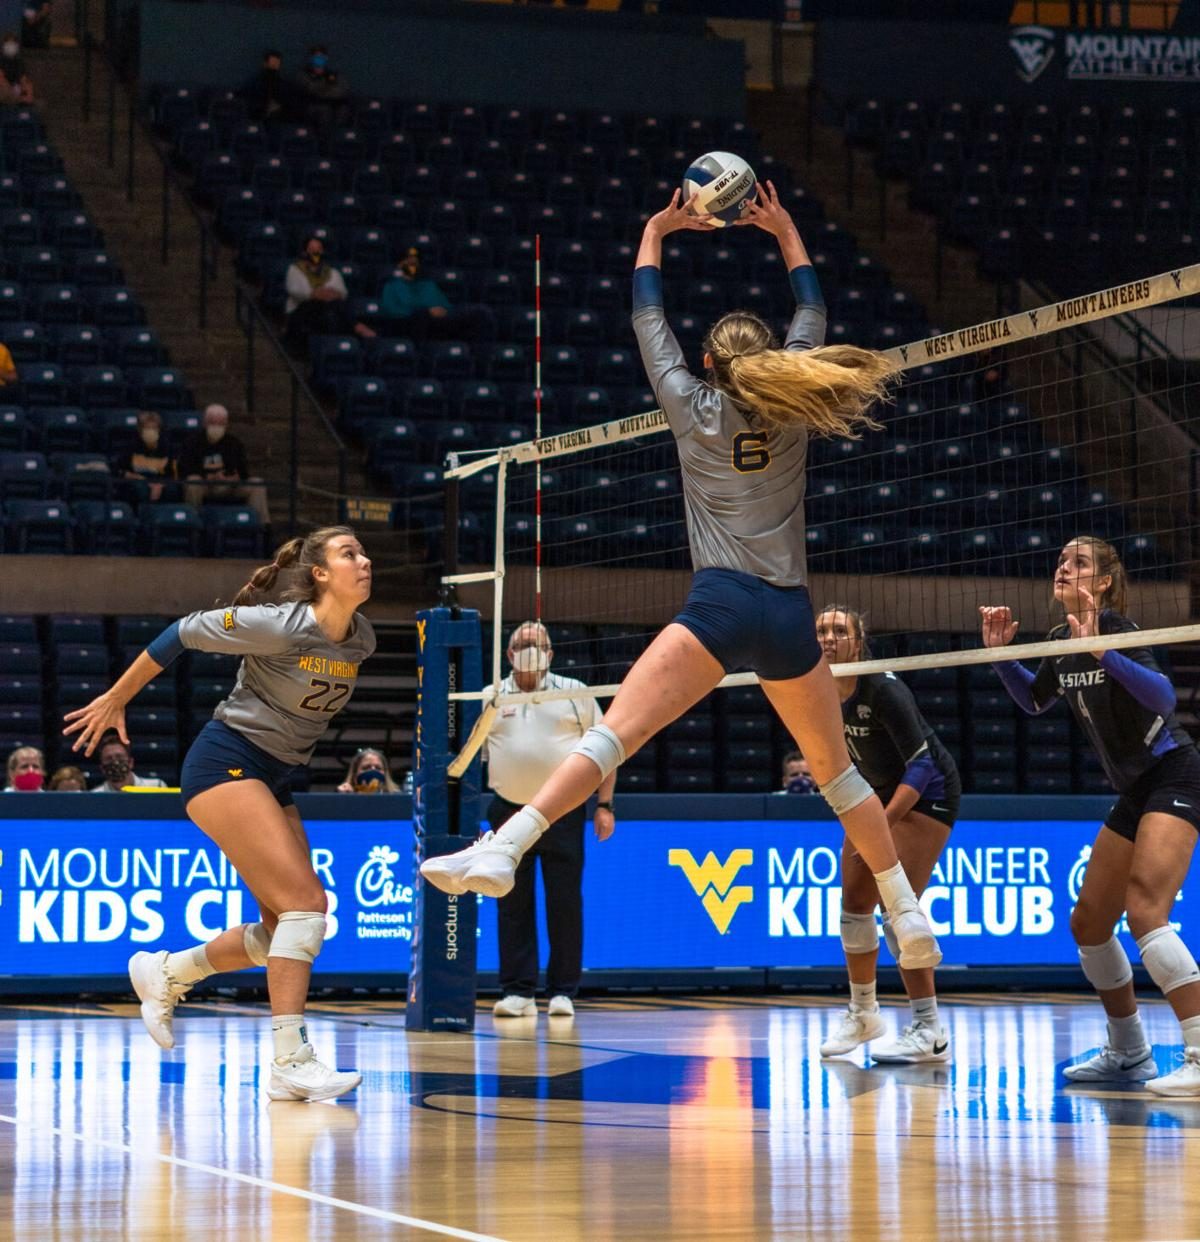 Lacey Zerwas (6) sets the ball to Audrey Adams (22) against Kansas State on Oct. 1, 2020 at the WVU Coliseum.